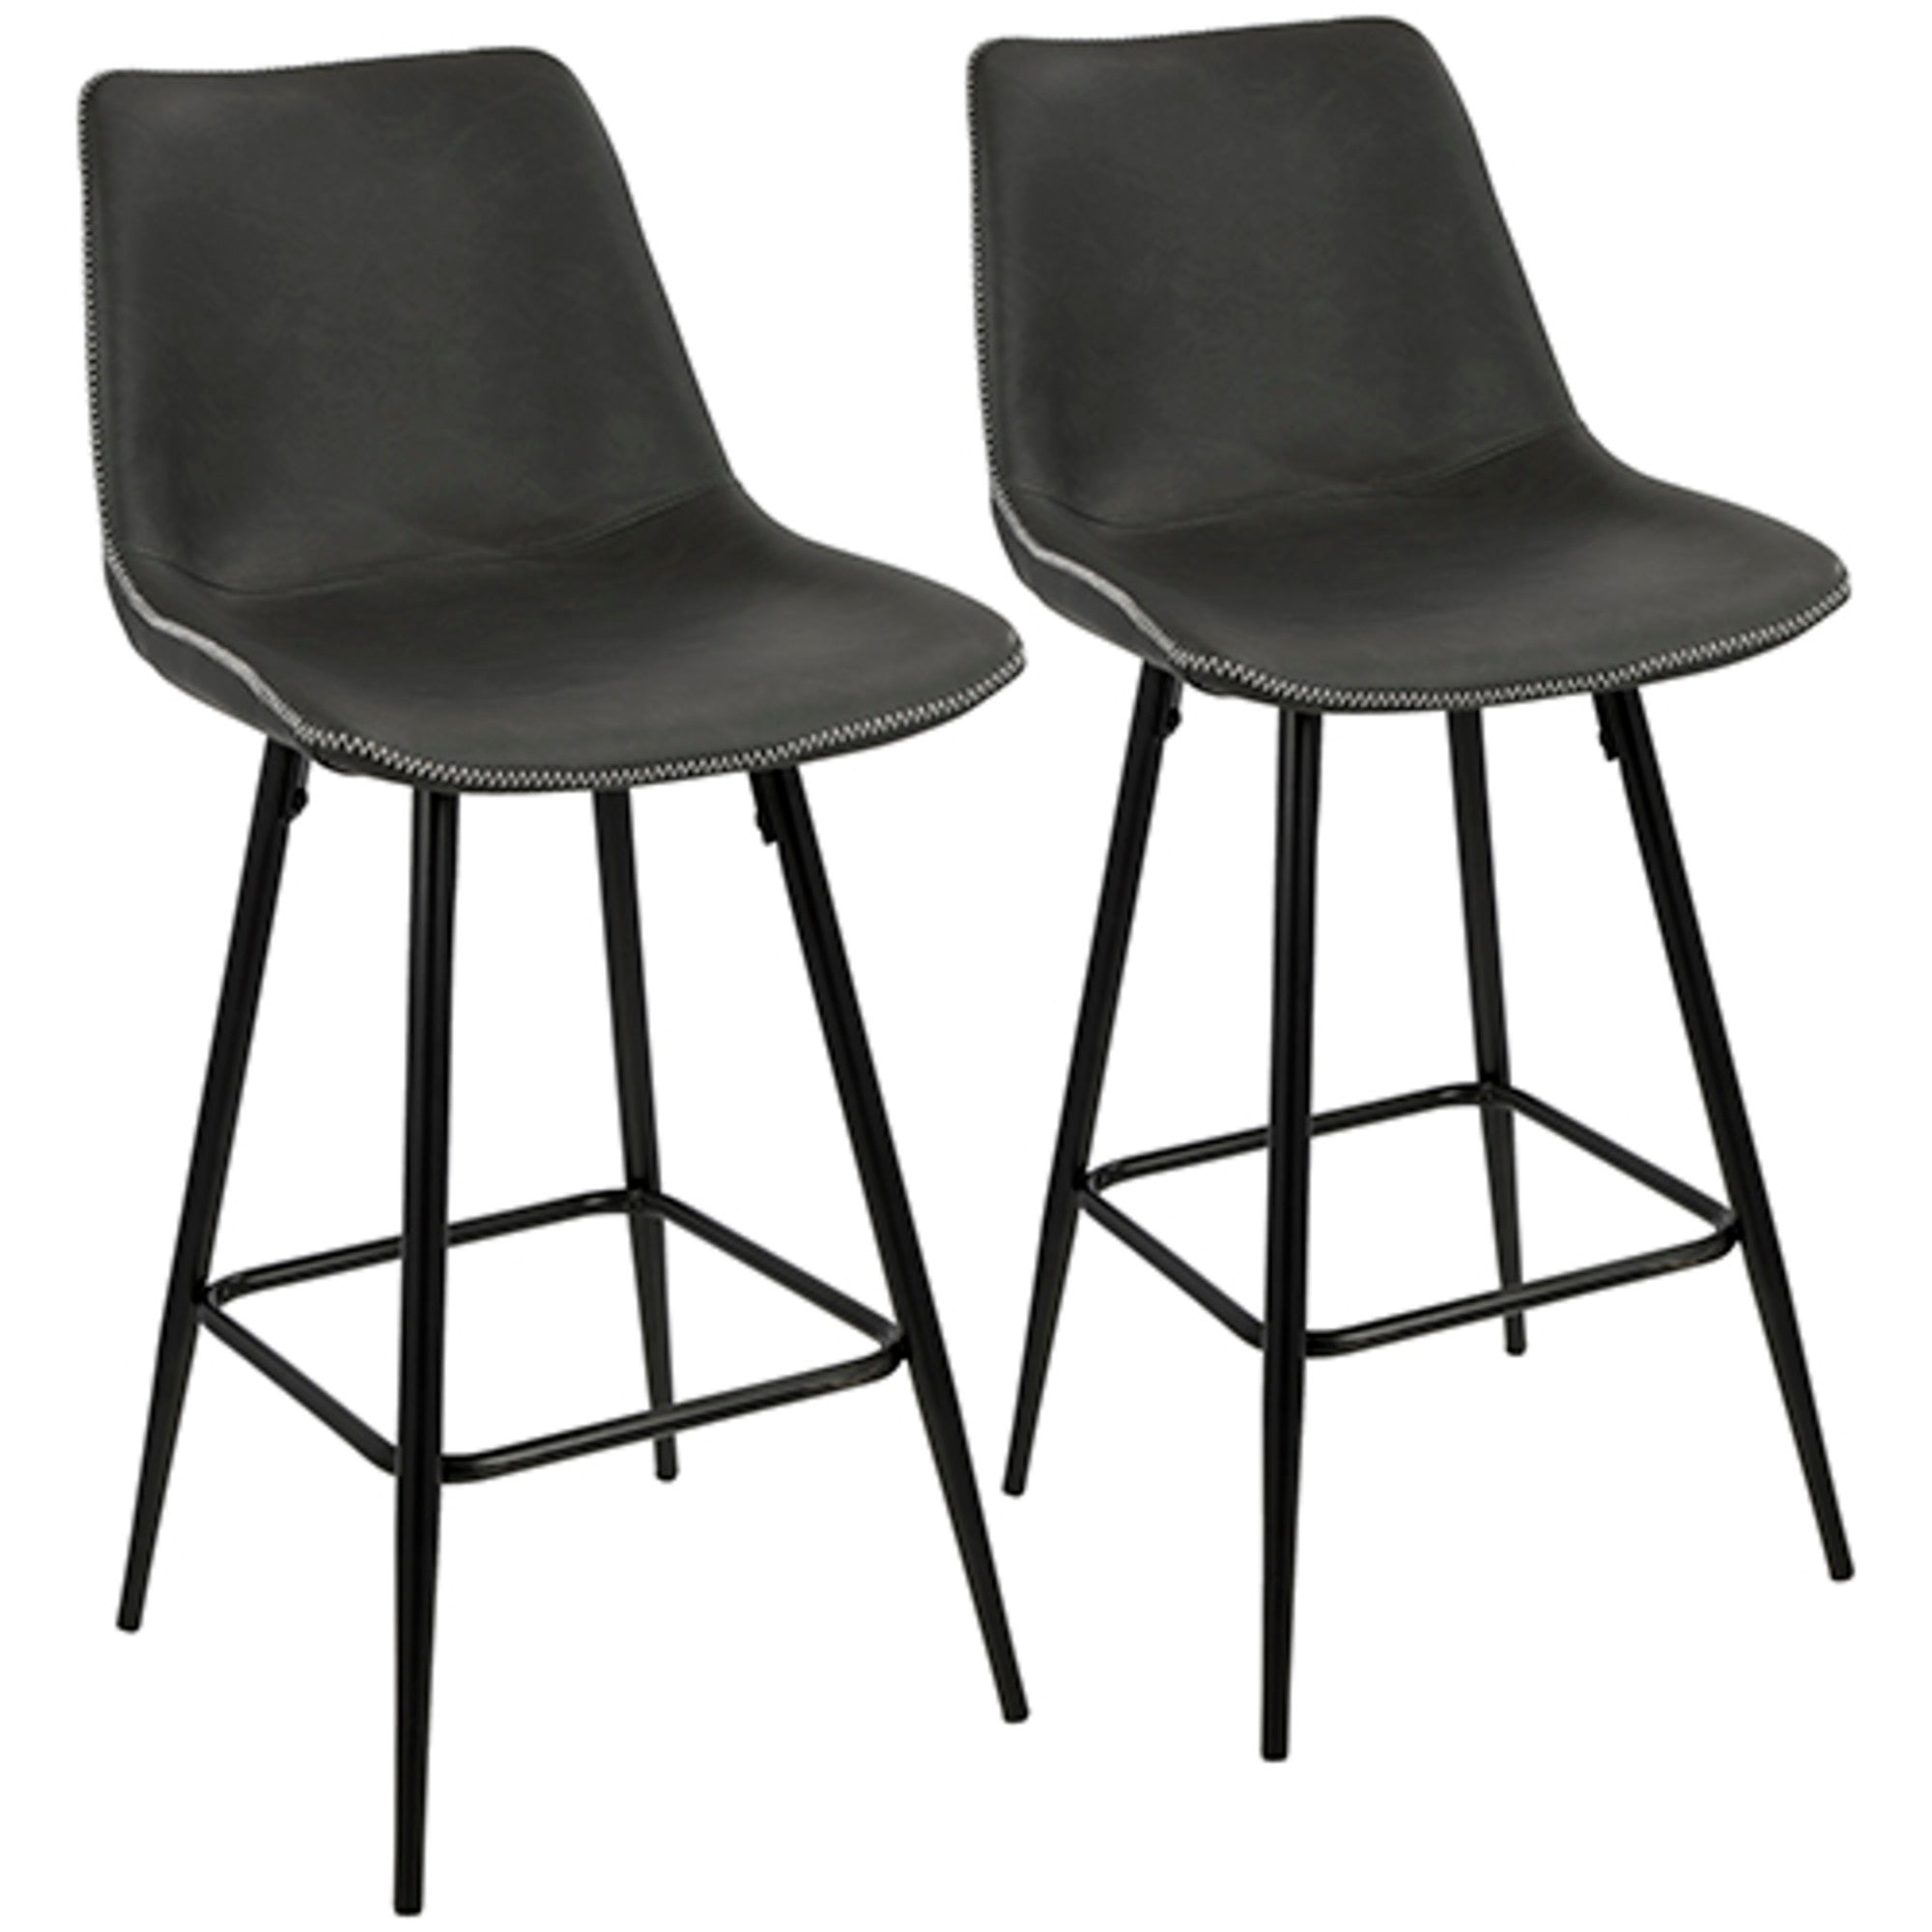 Gabriela Stool - Set of 2